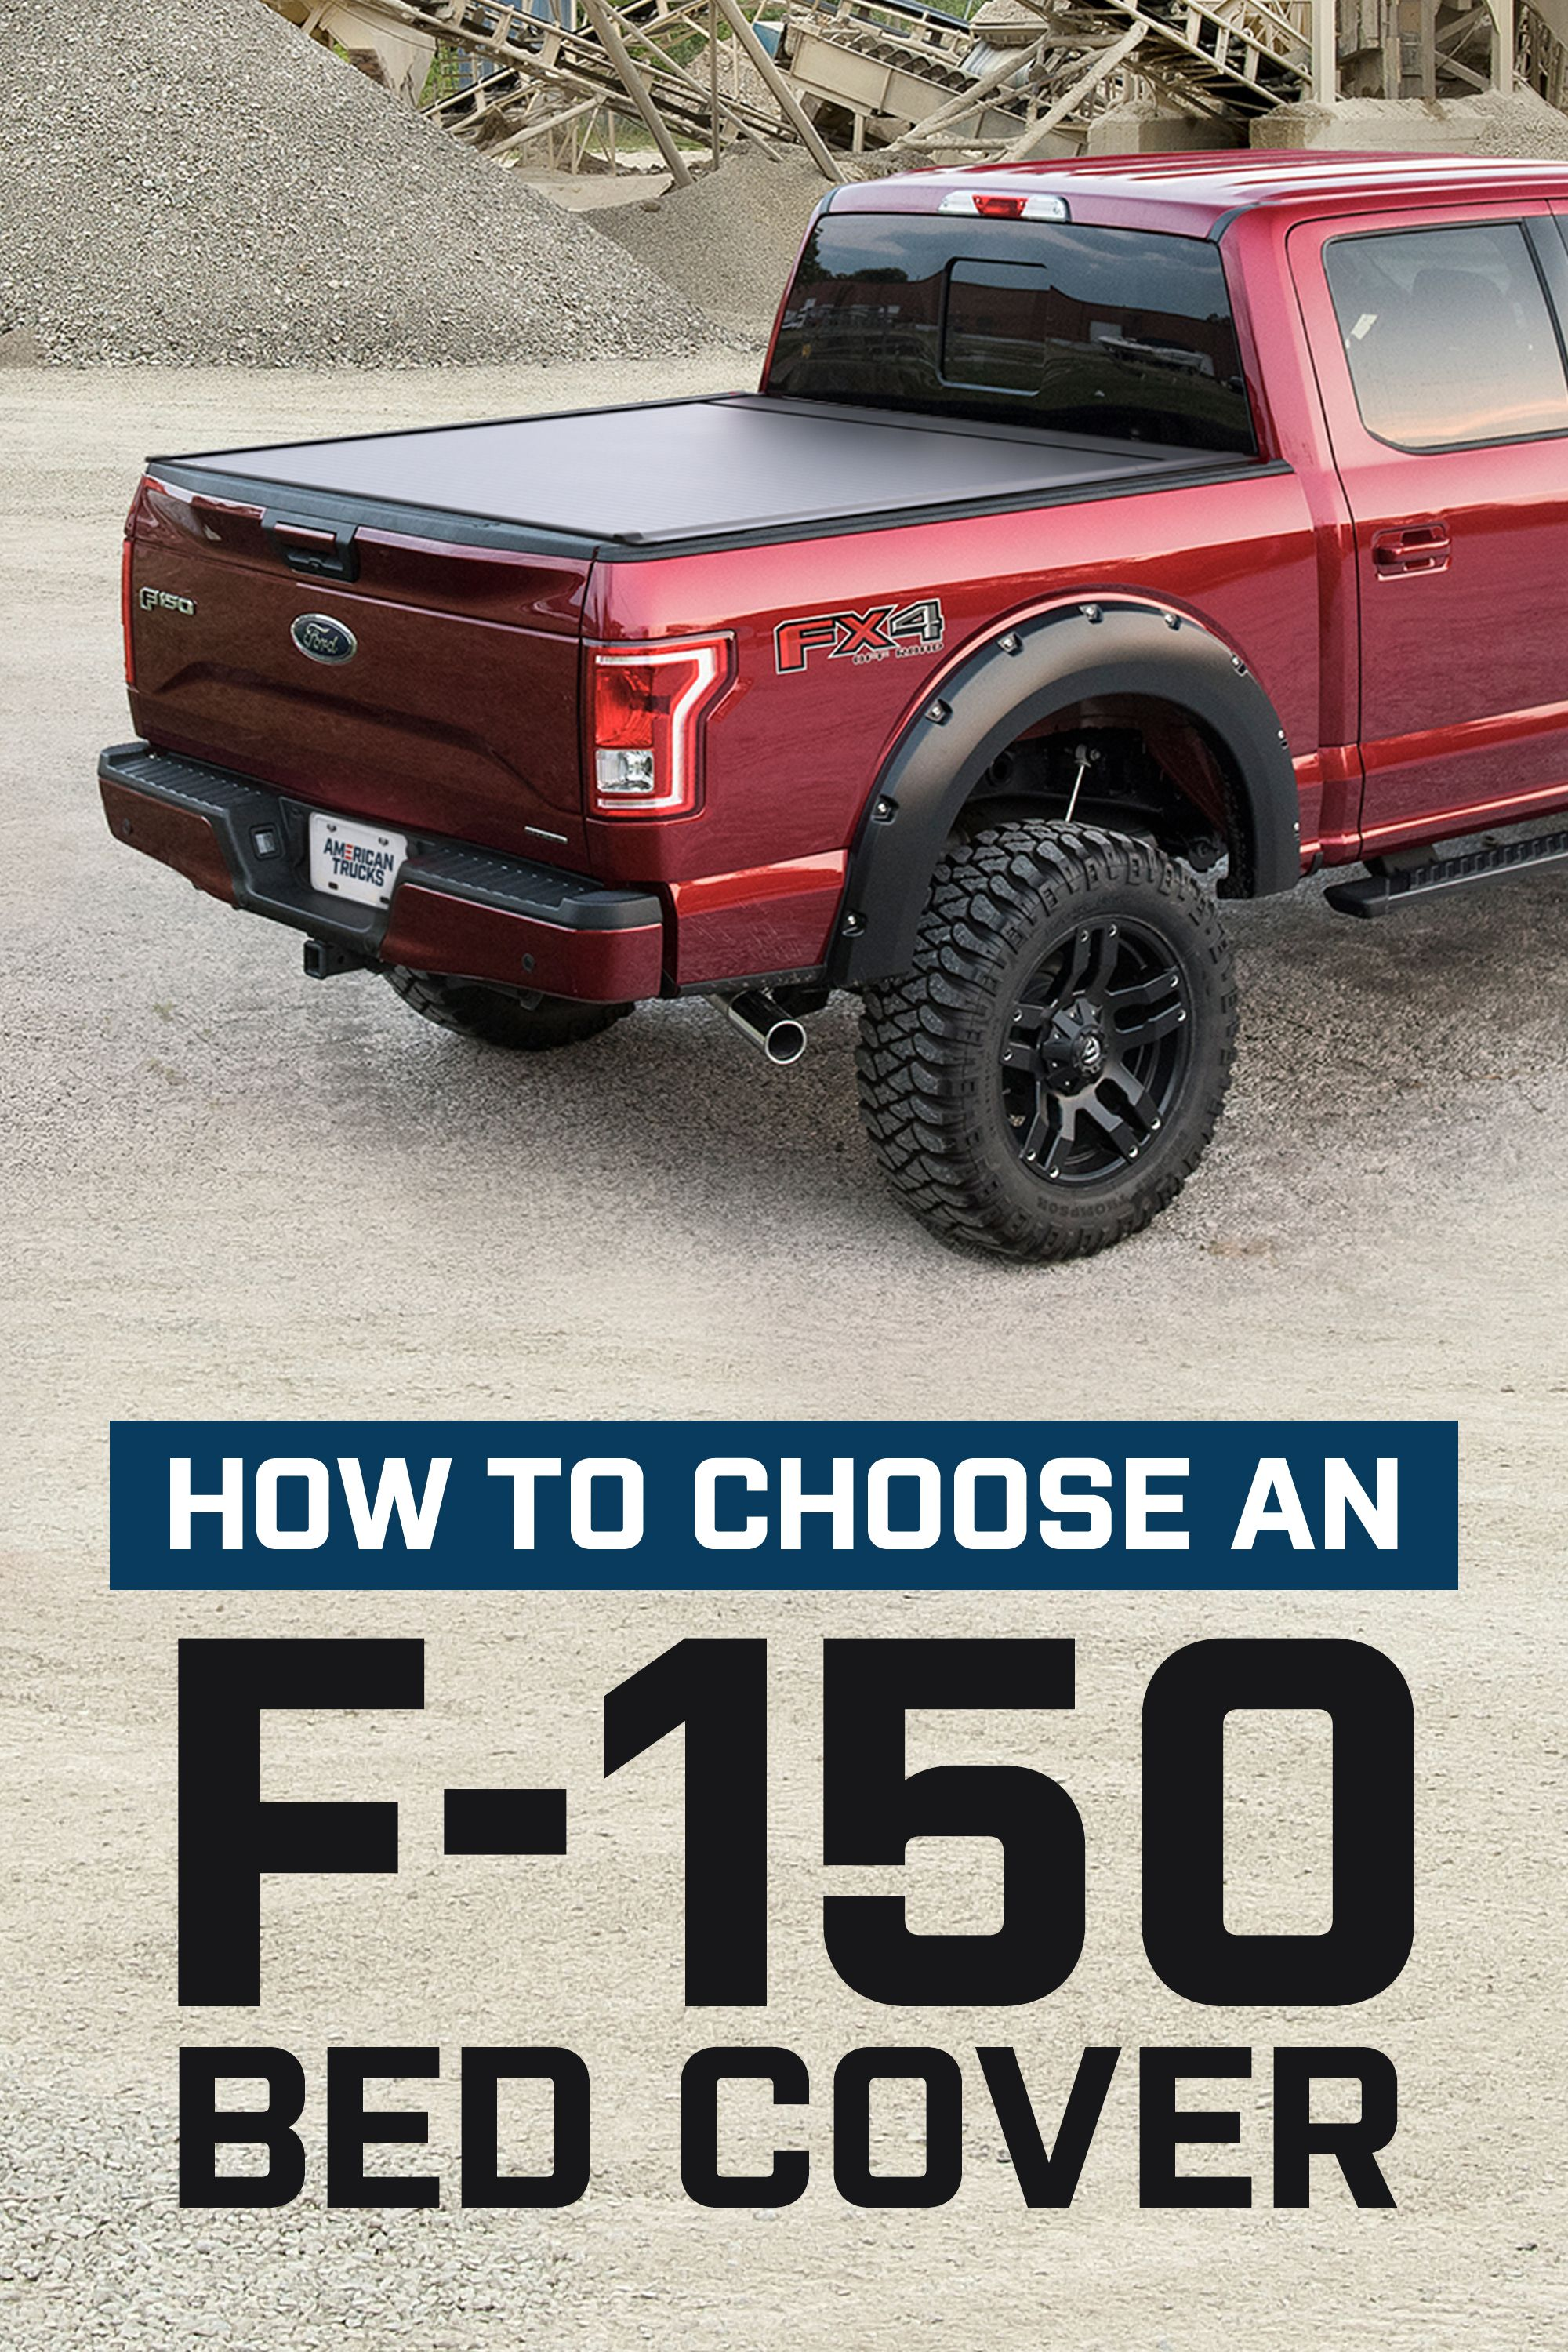 The Ultimate F150 Bed Cover Guide Tonneau cover, F150